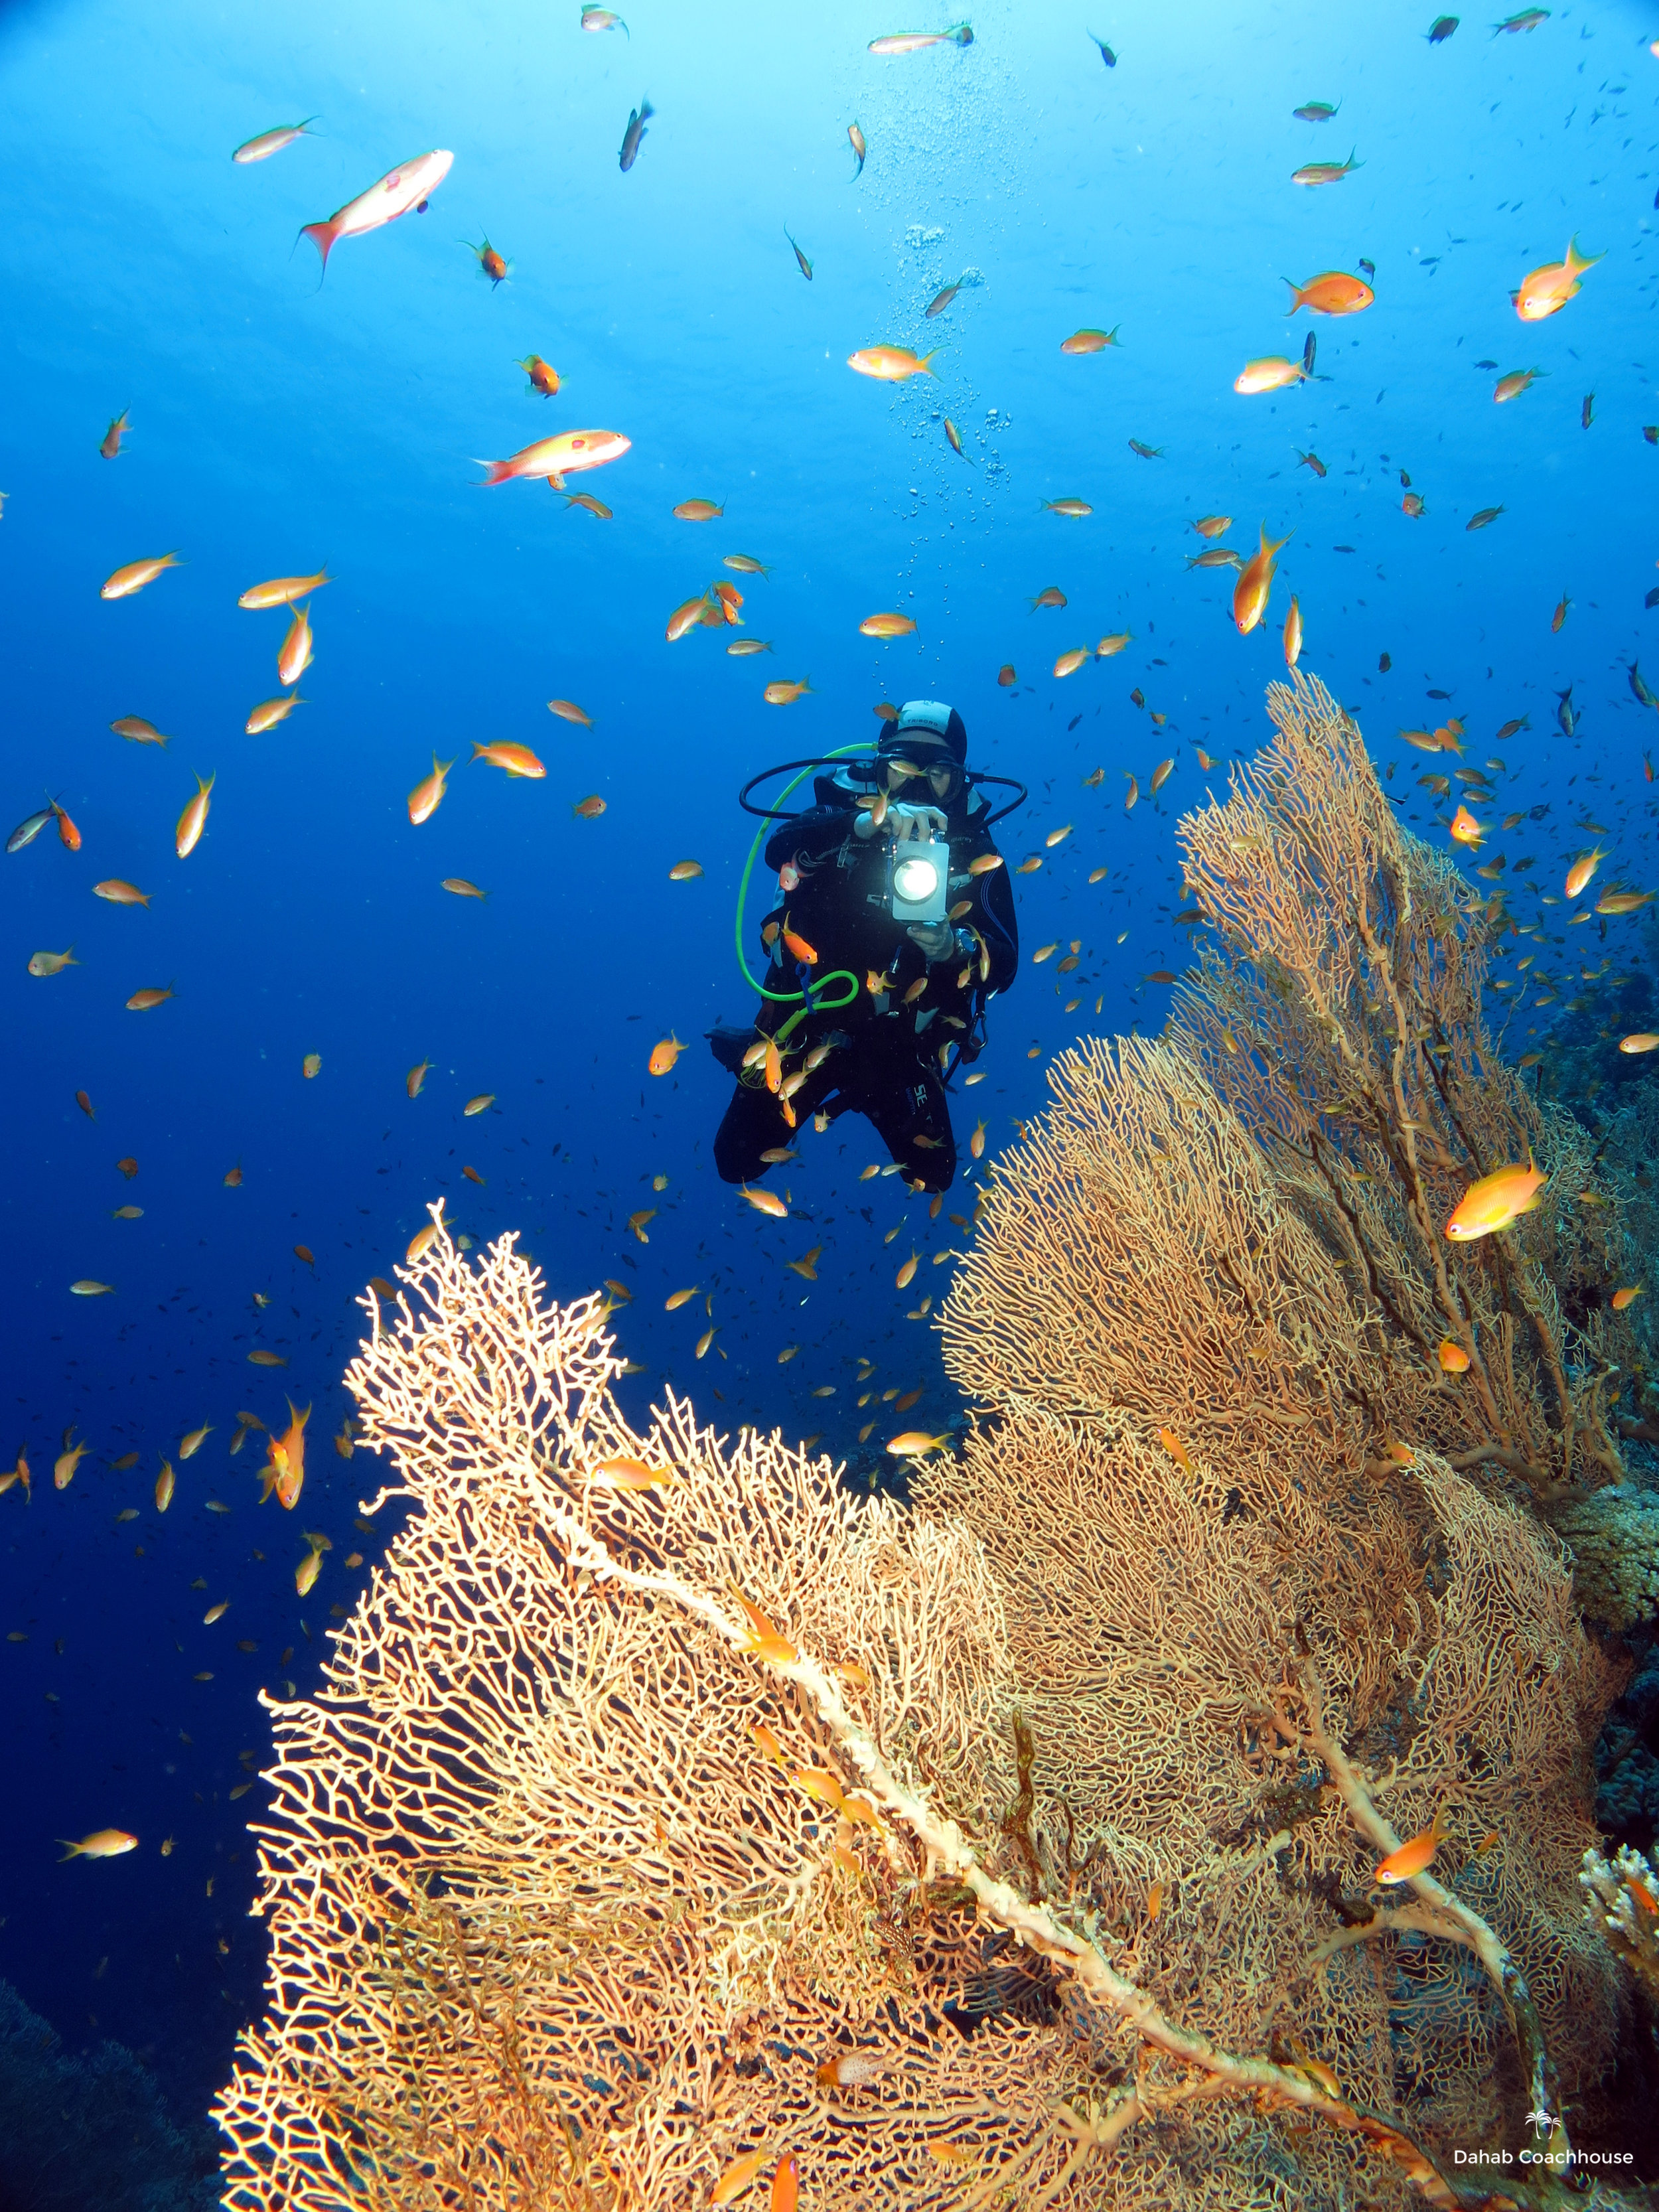 Dahab_Coachhouse_Egypt_Red_Sea_Diving_Beach_Accommodation_Holiday_Travel_Diver_Photo.JPG